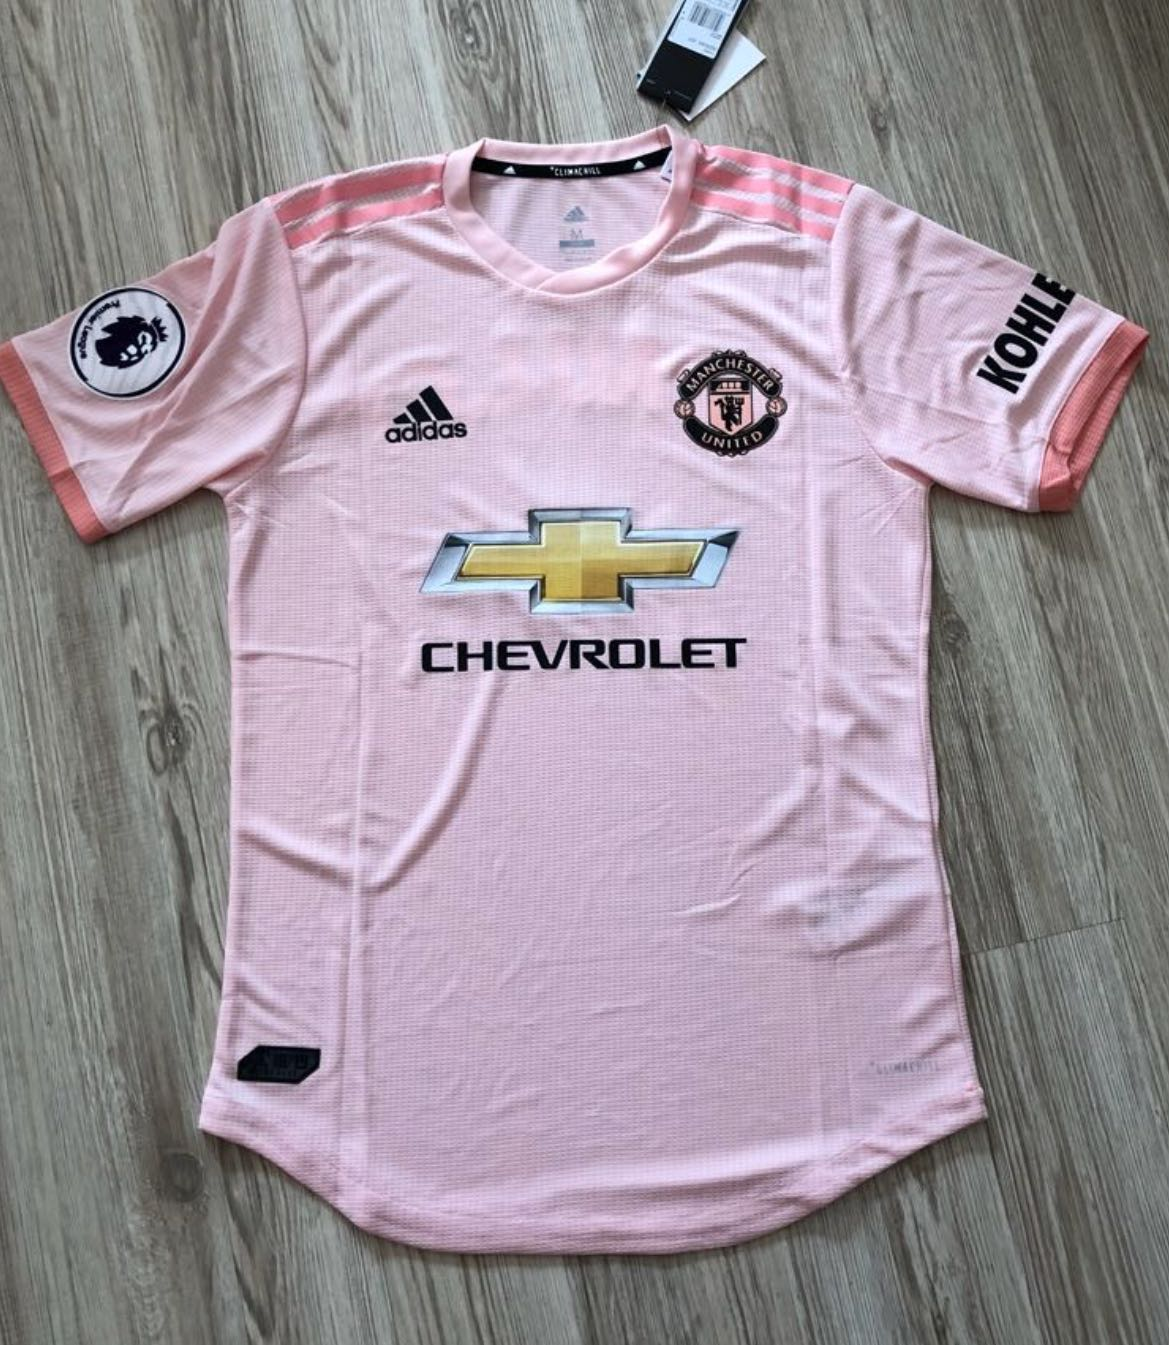 78a683de388 ❗️SALE❗ Manchester United 18 19 away kit Manchester United away ...